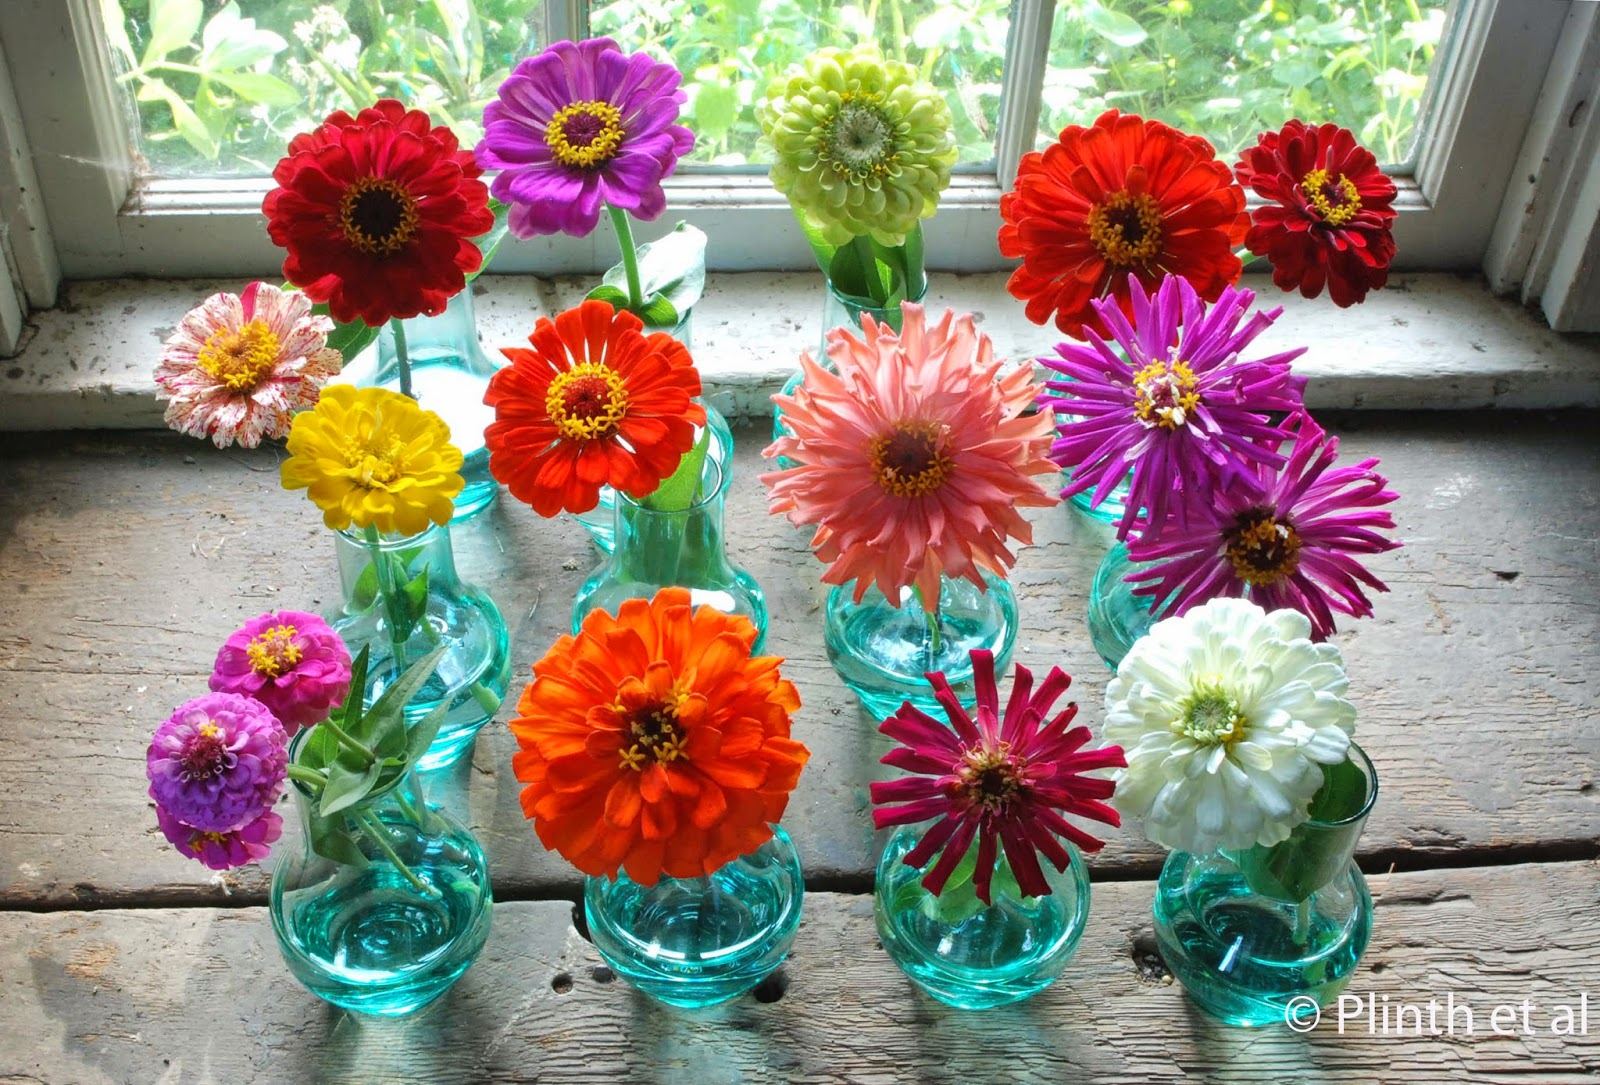 How To Grow Zinnias In The Philippines